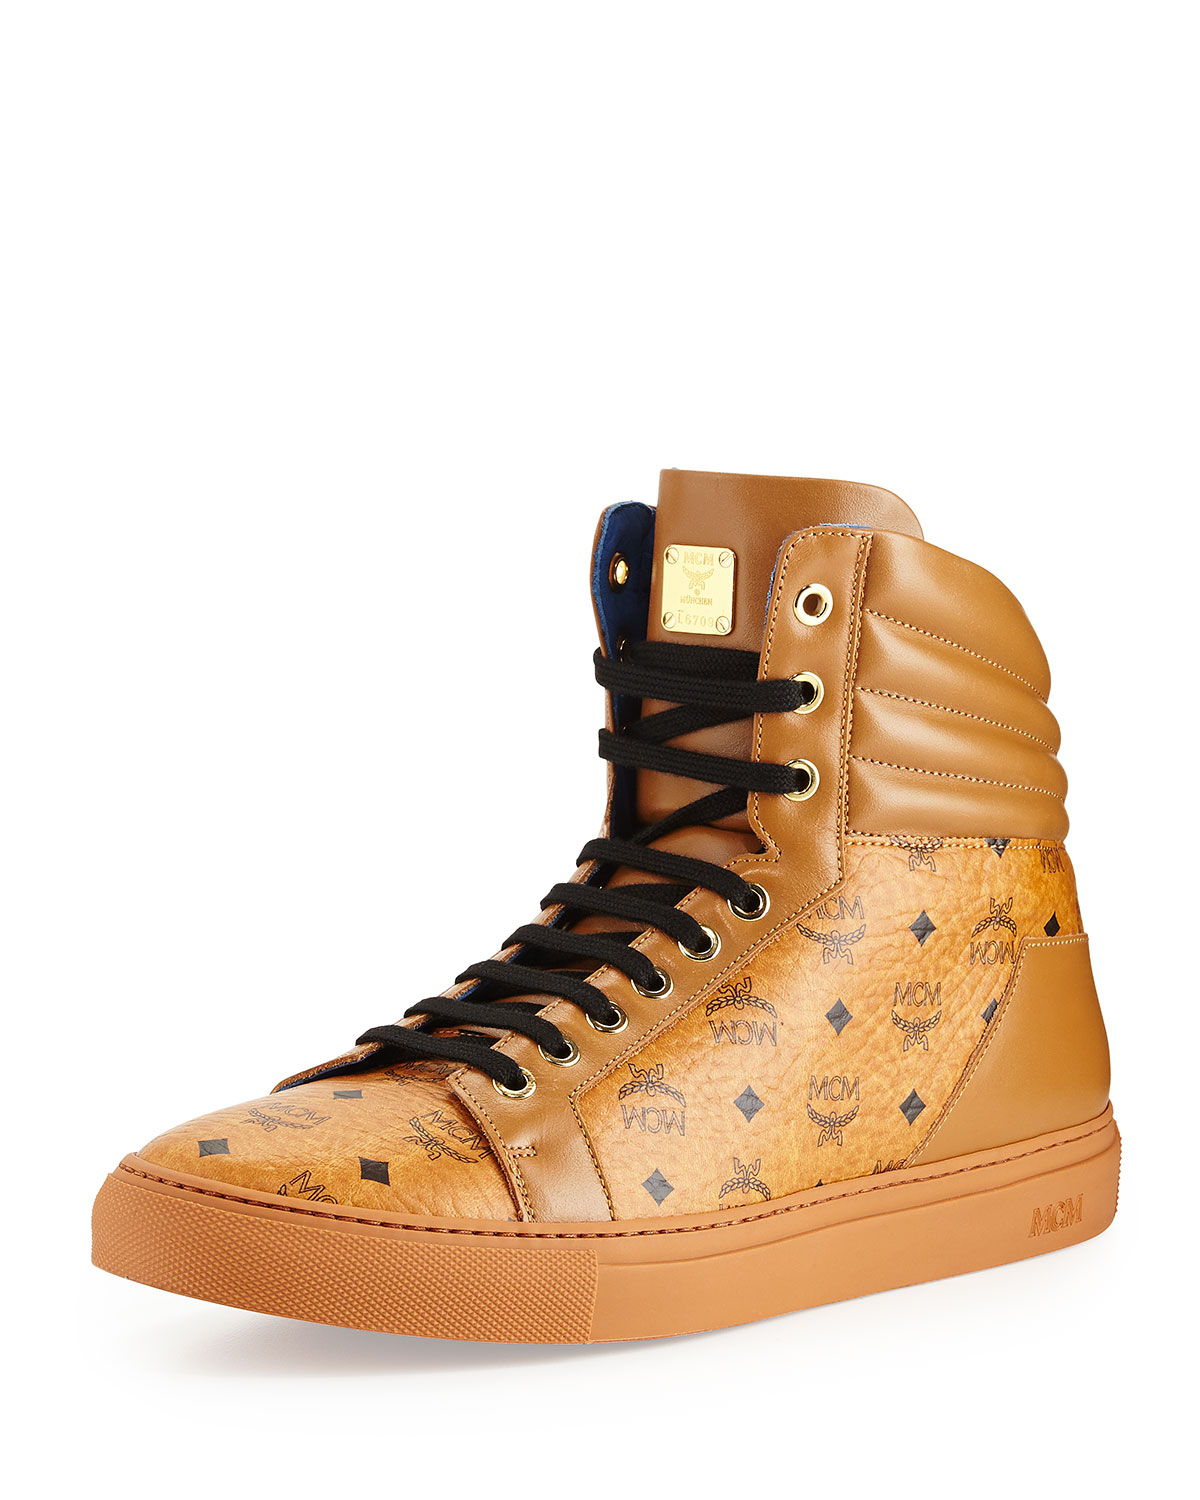 mcm monogrammed high top sneaker in brown for men lyst. Black Bedroom Furniture Sets. Home Design Ideas